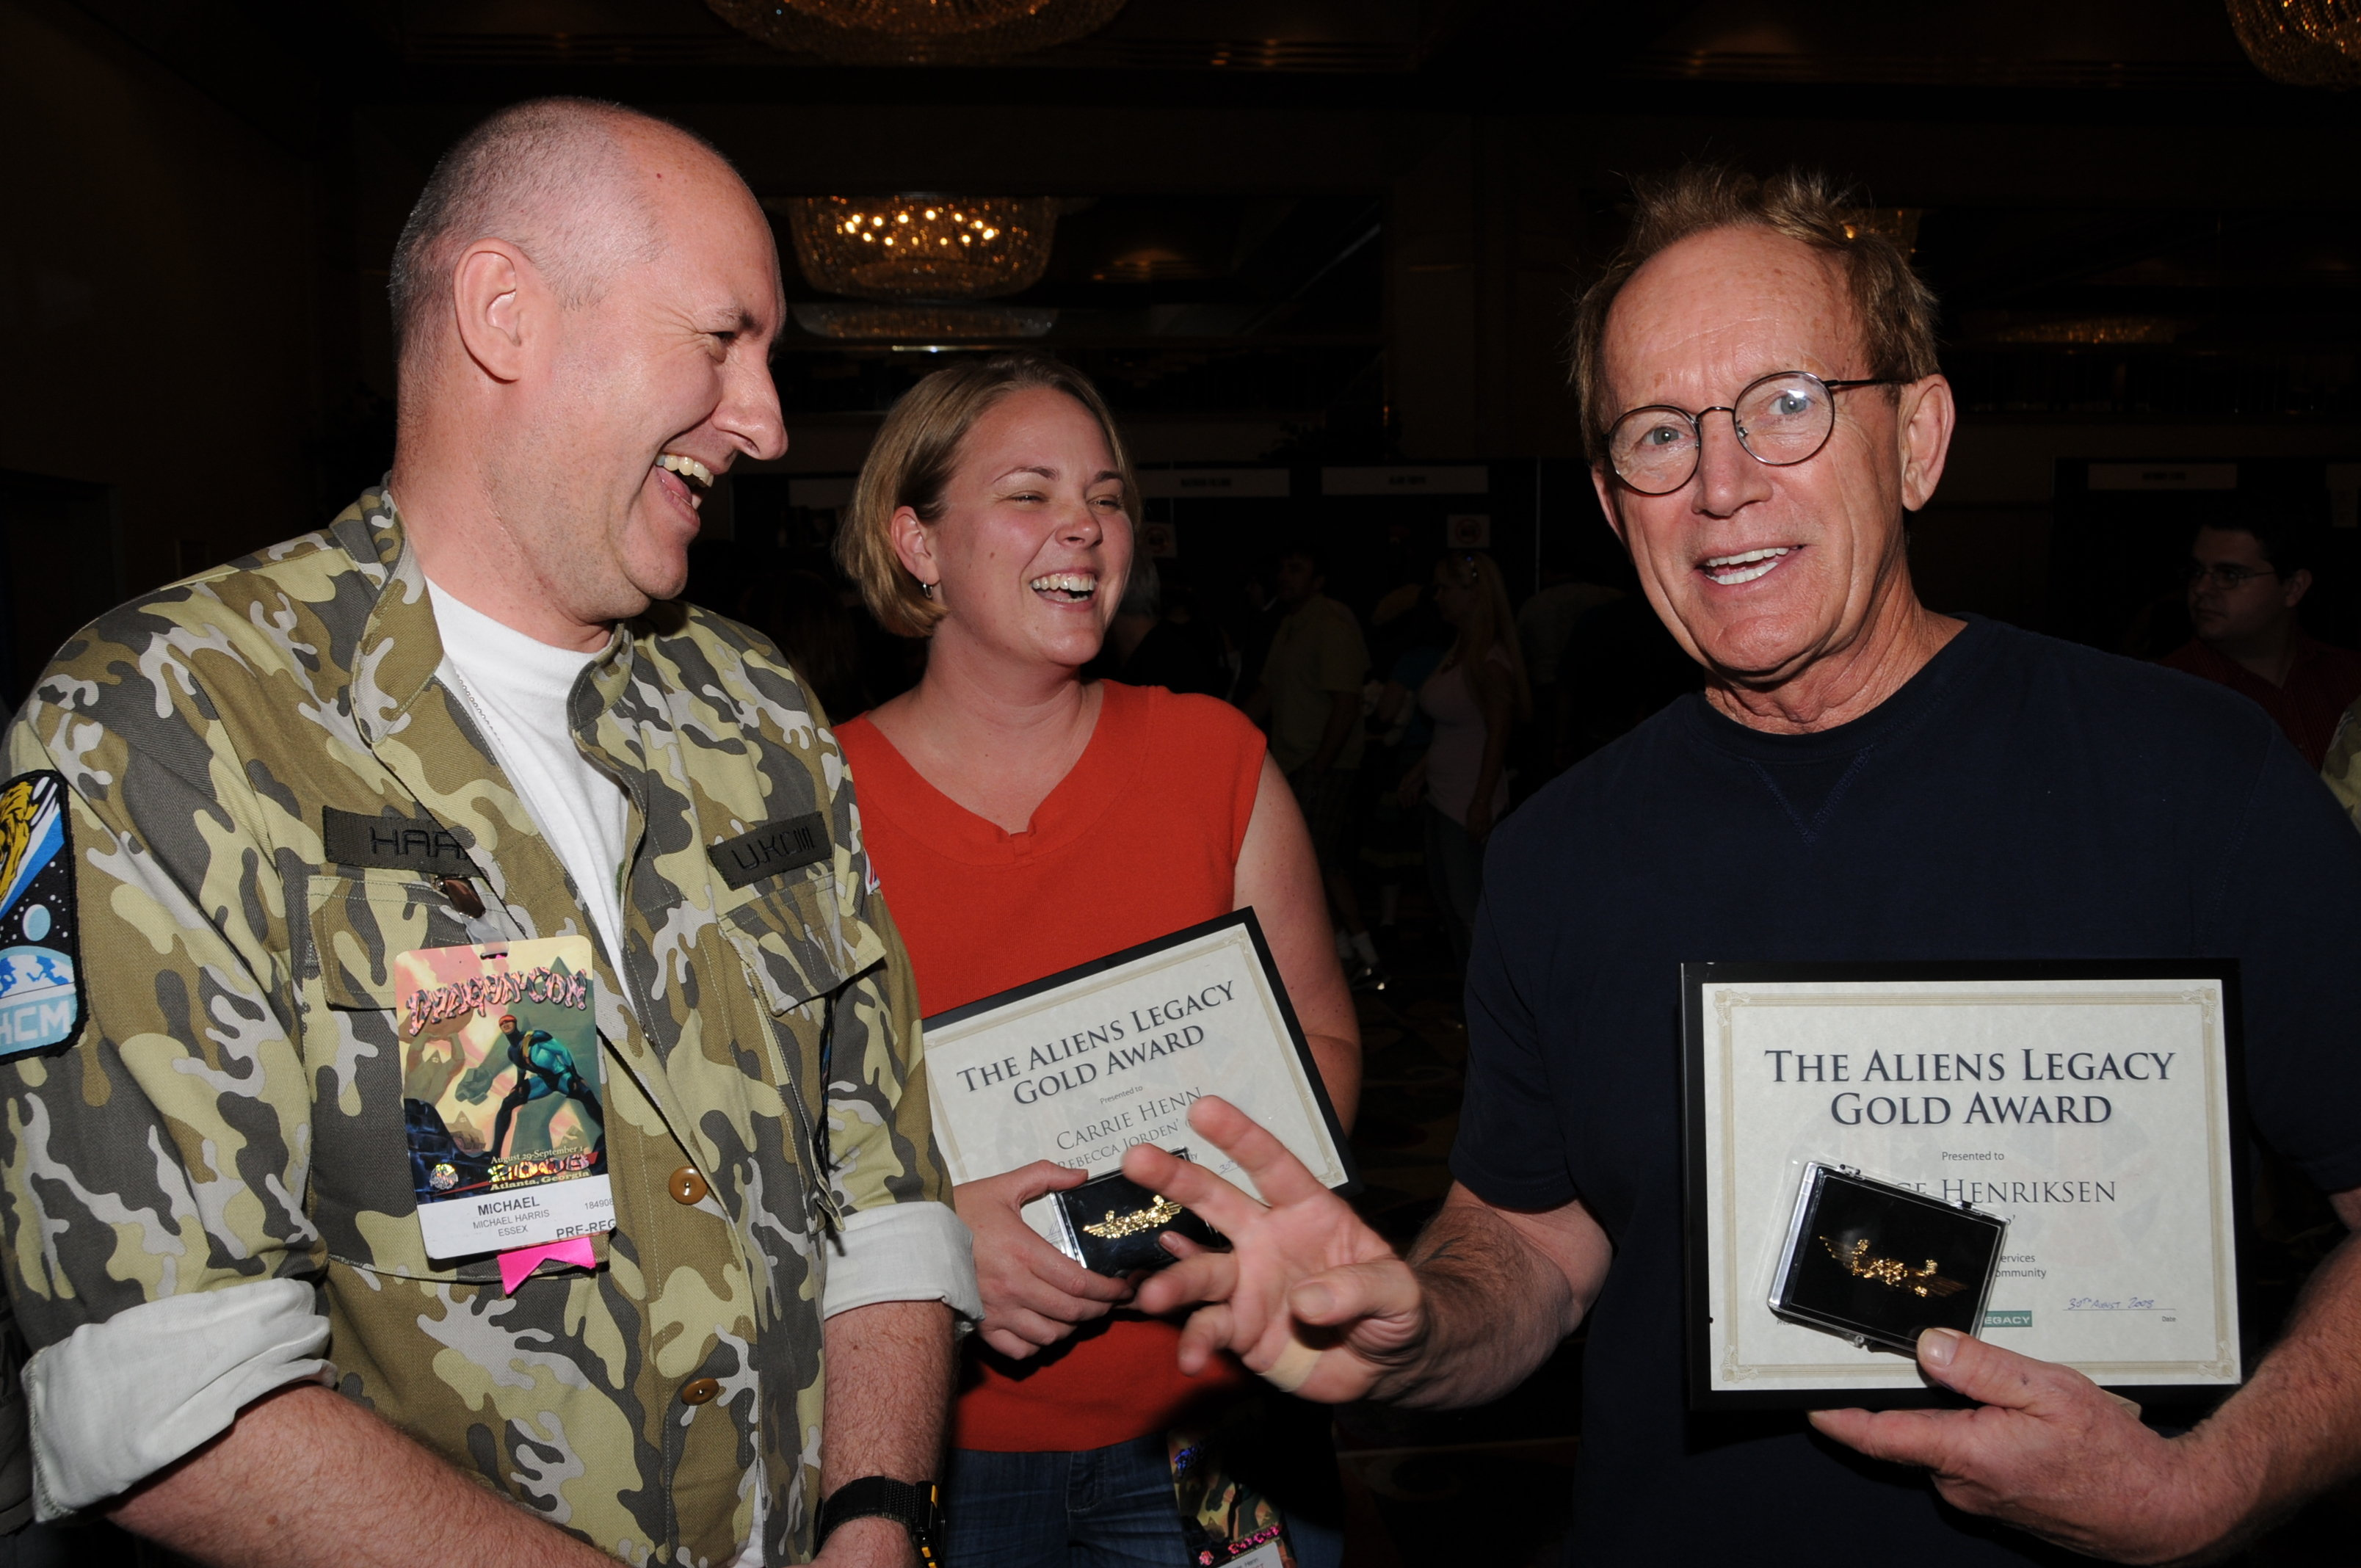 Producer Harry Harris (left) presents Lance Henriksen and Carrie Kutcher with their Aliens Legacy Gold Awards on behalf of Aliens fans worldwide